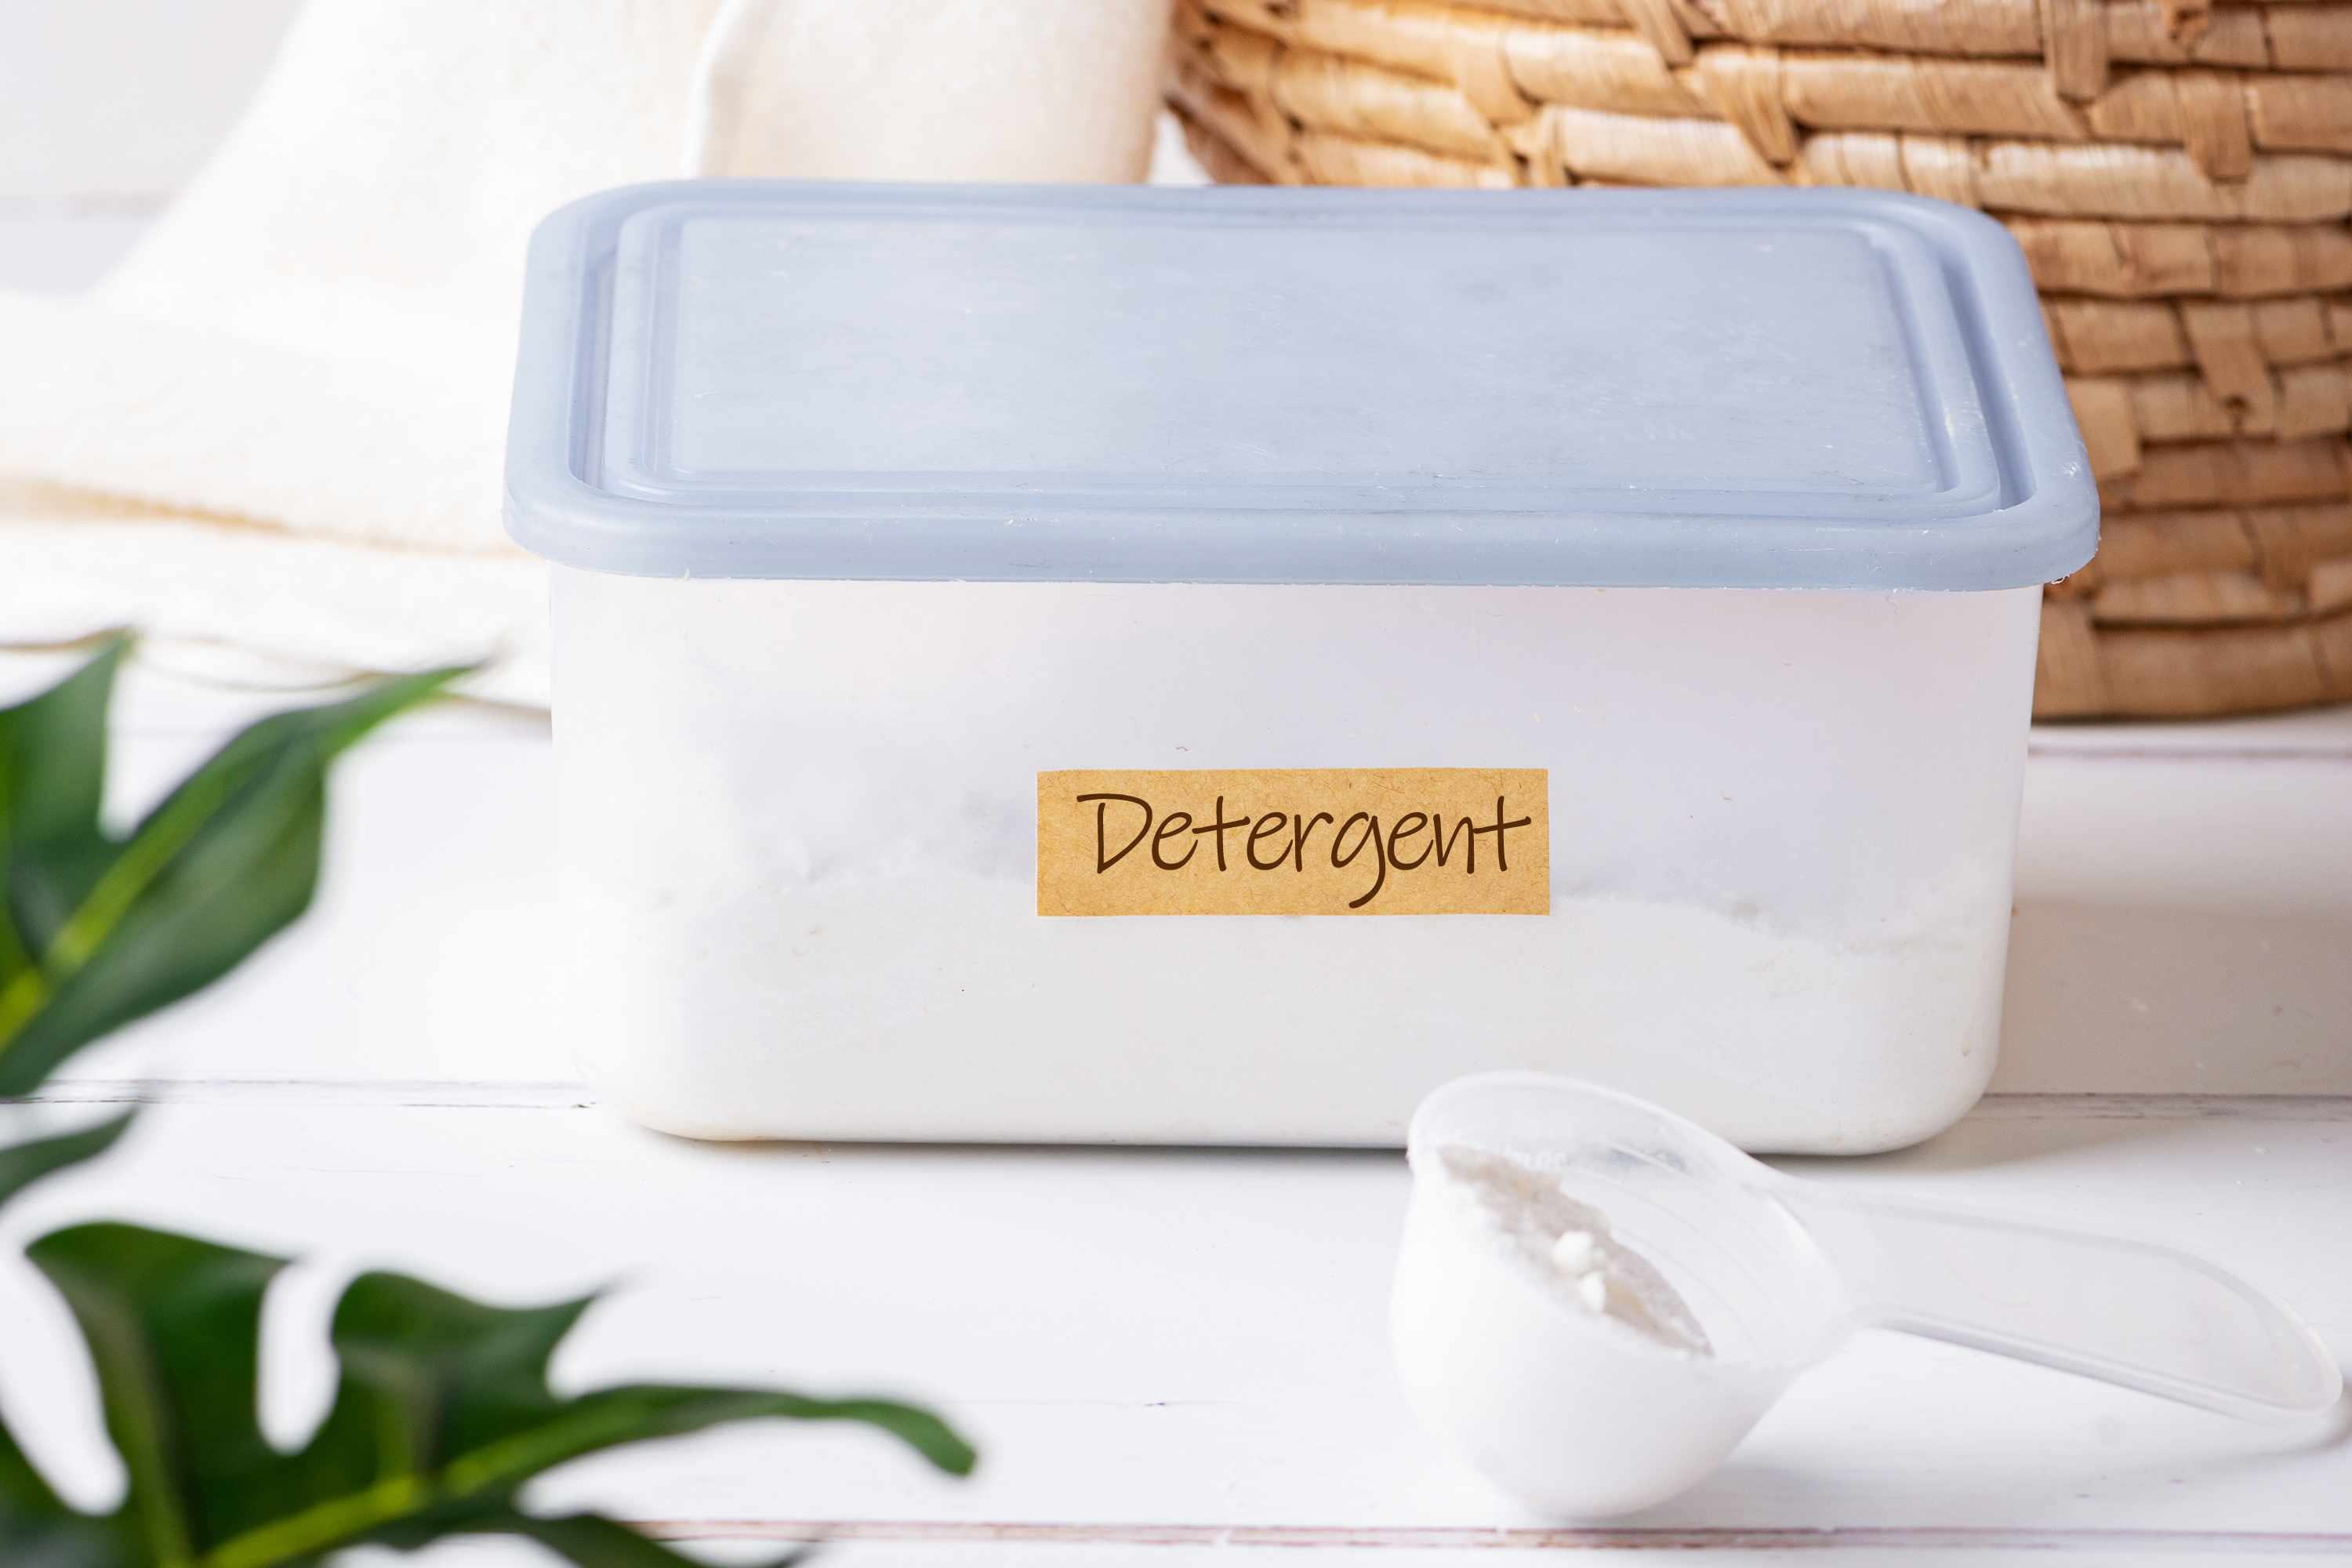 detergent in an airtight container